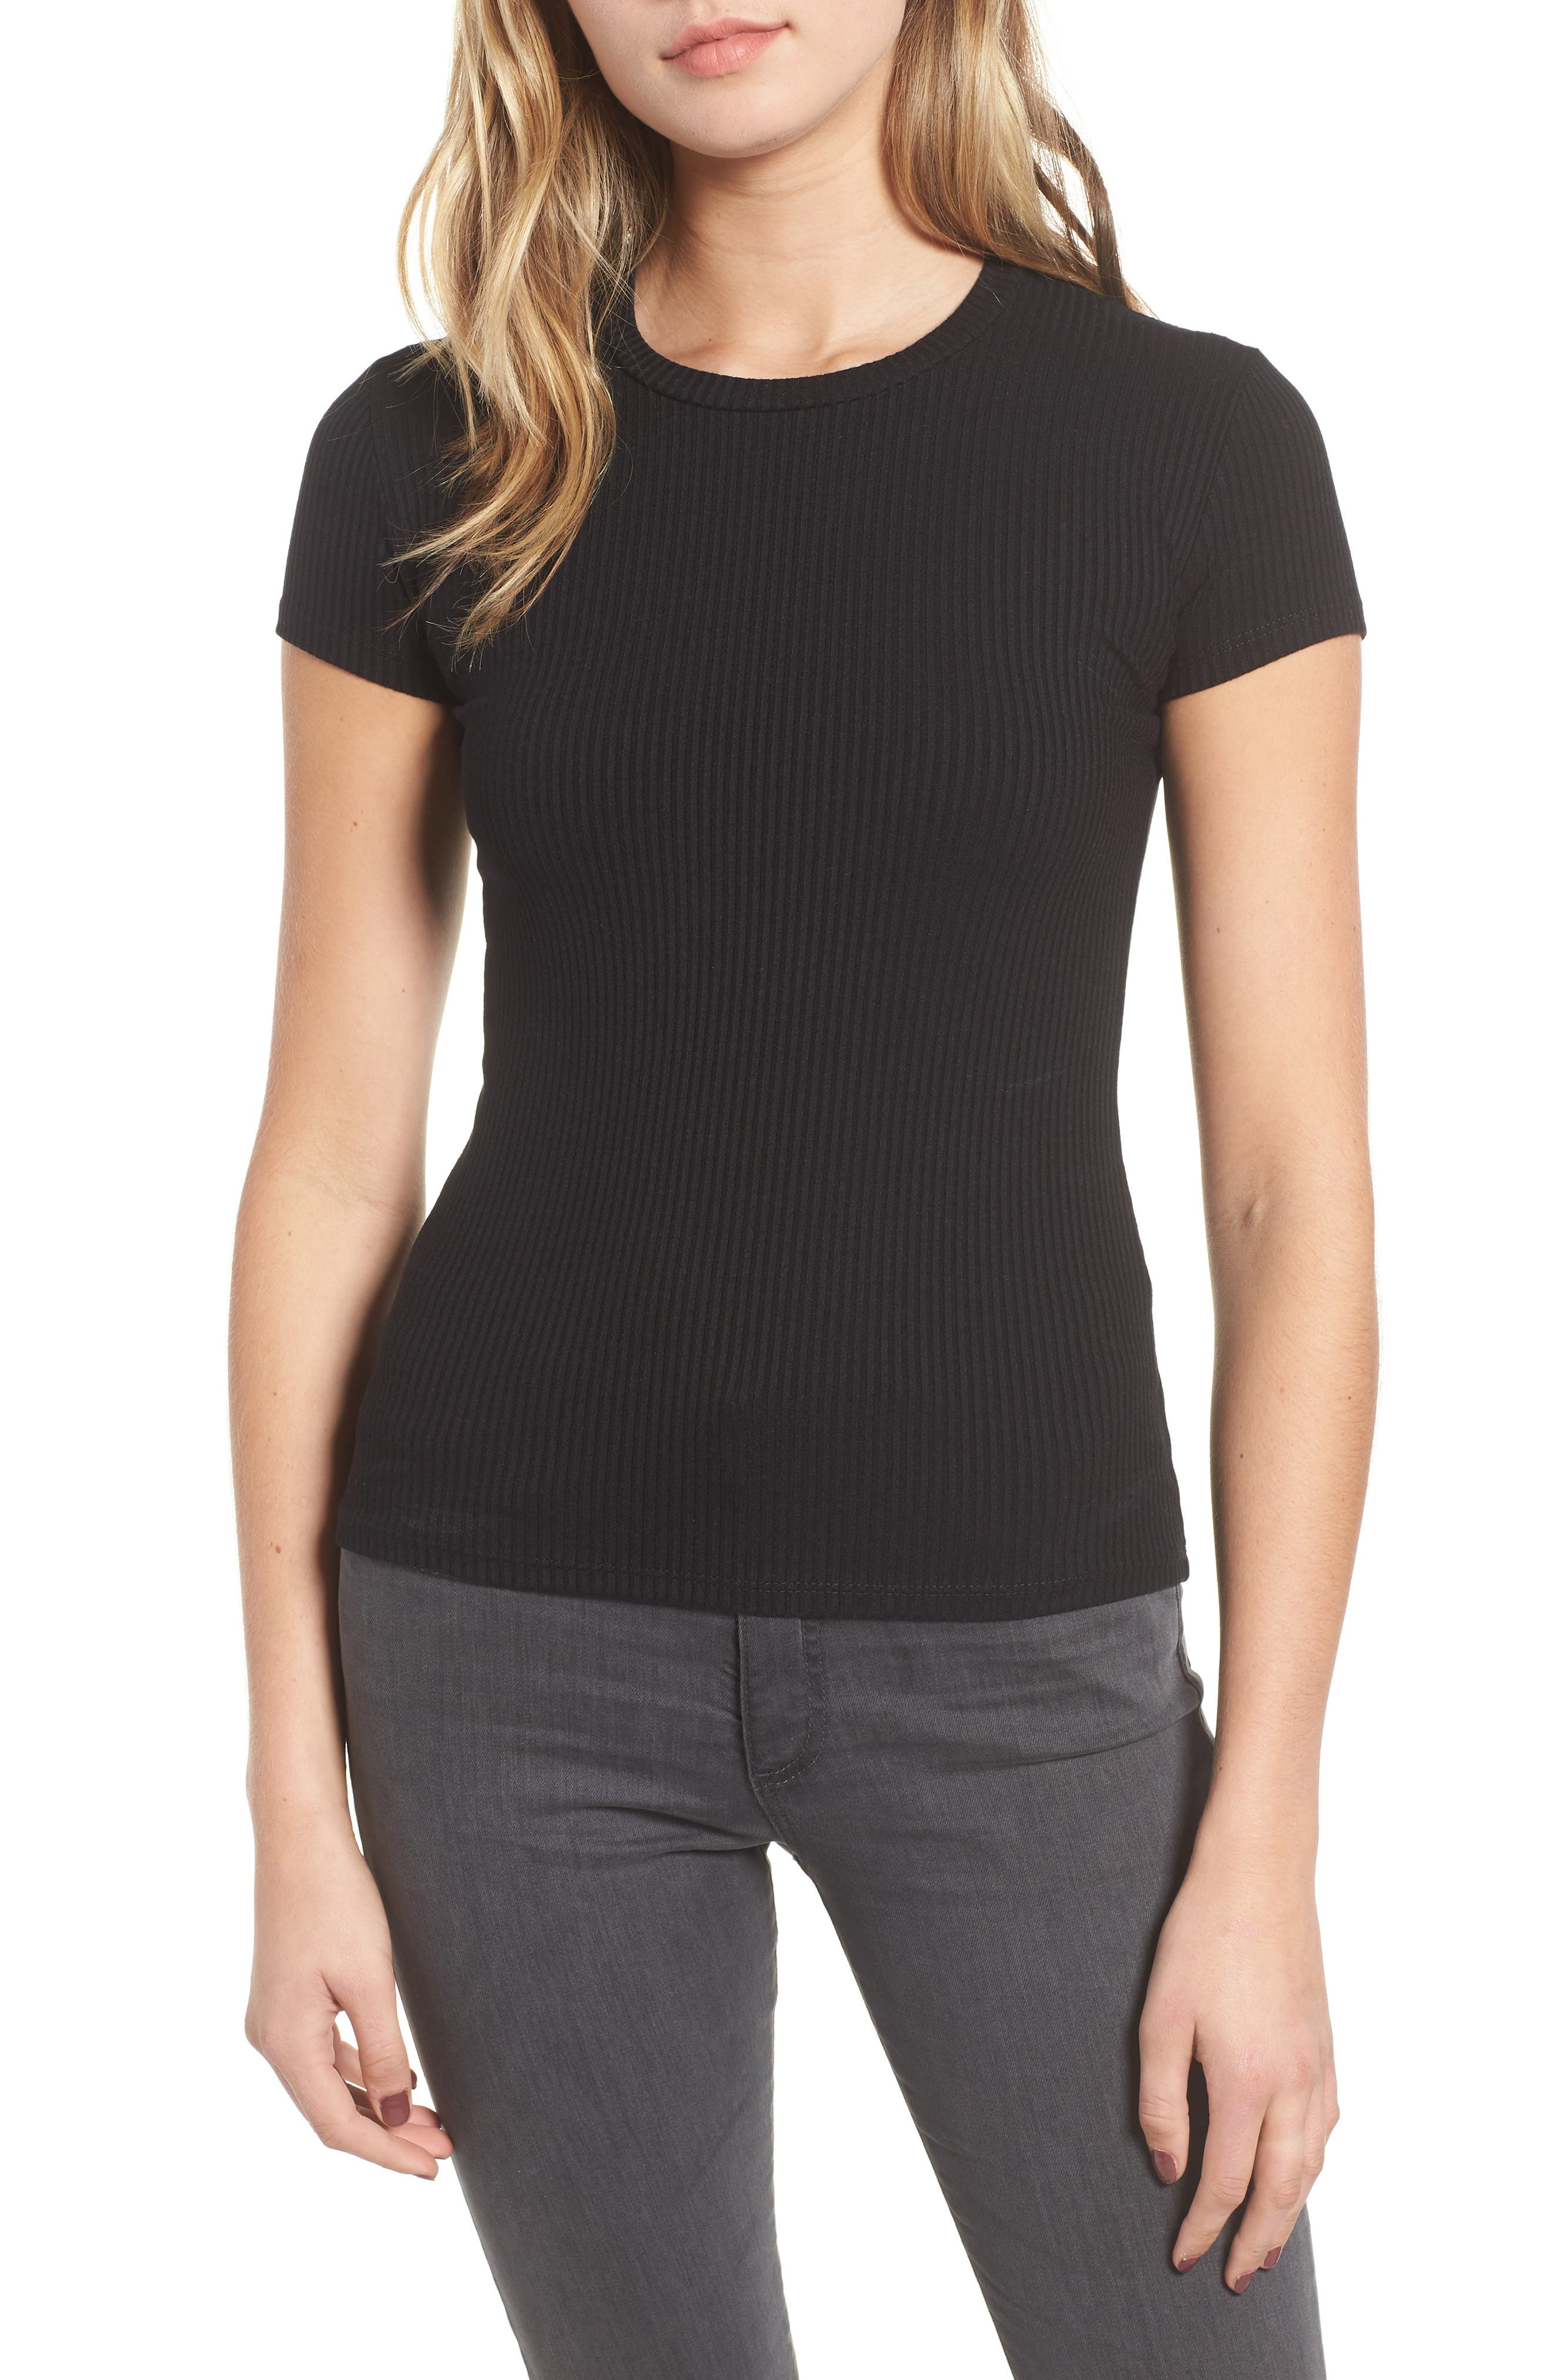 AMOUR VERT Diana Ribbed Tee in Black